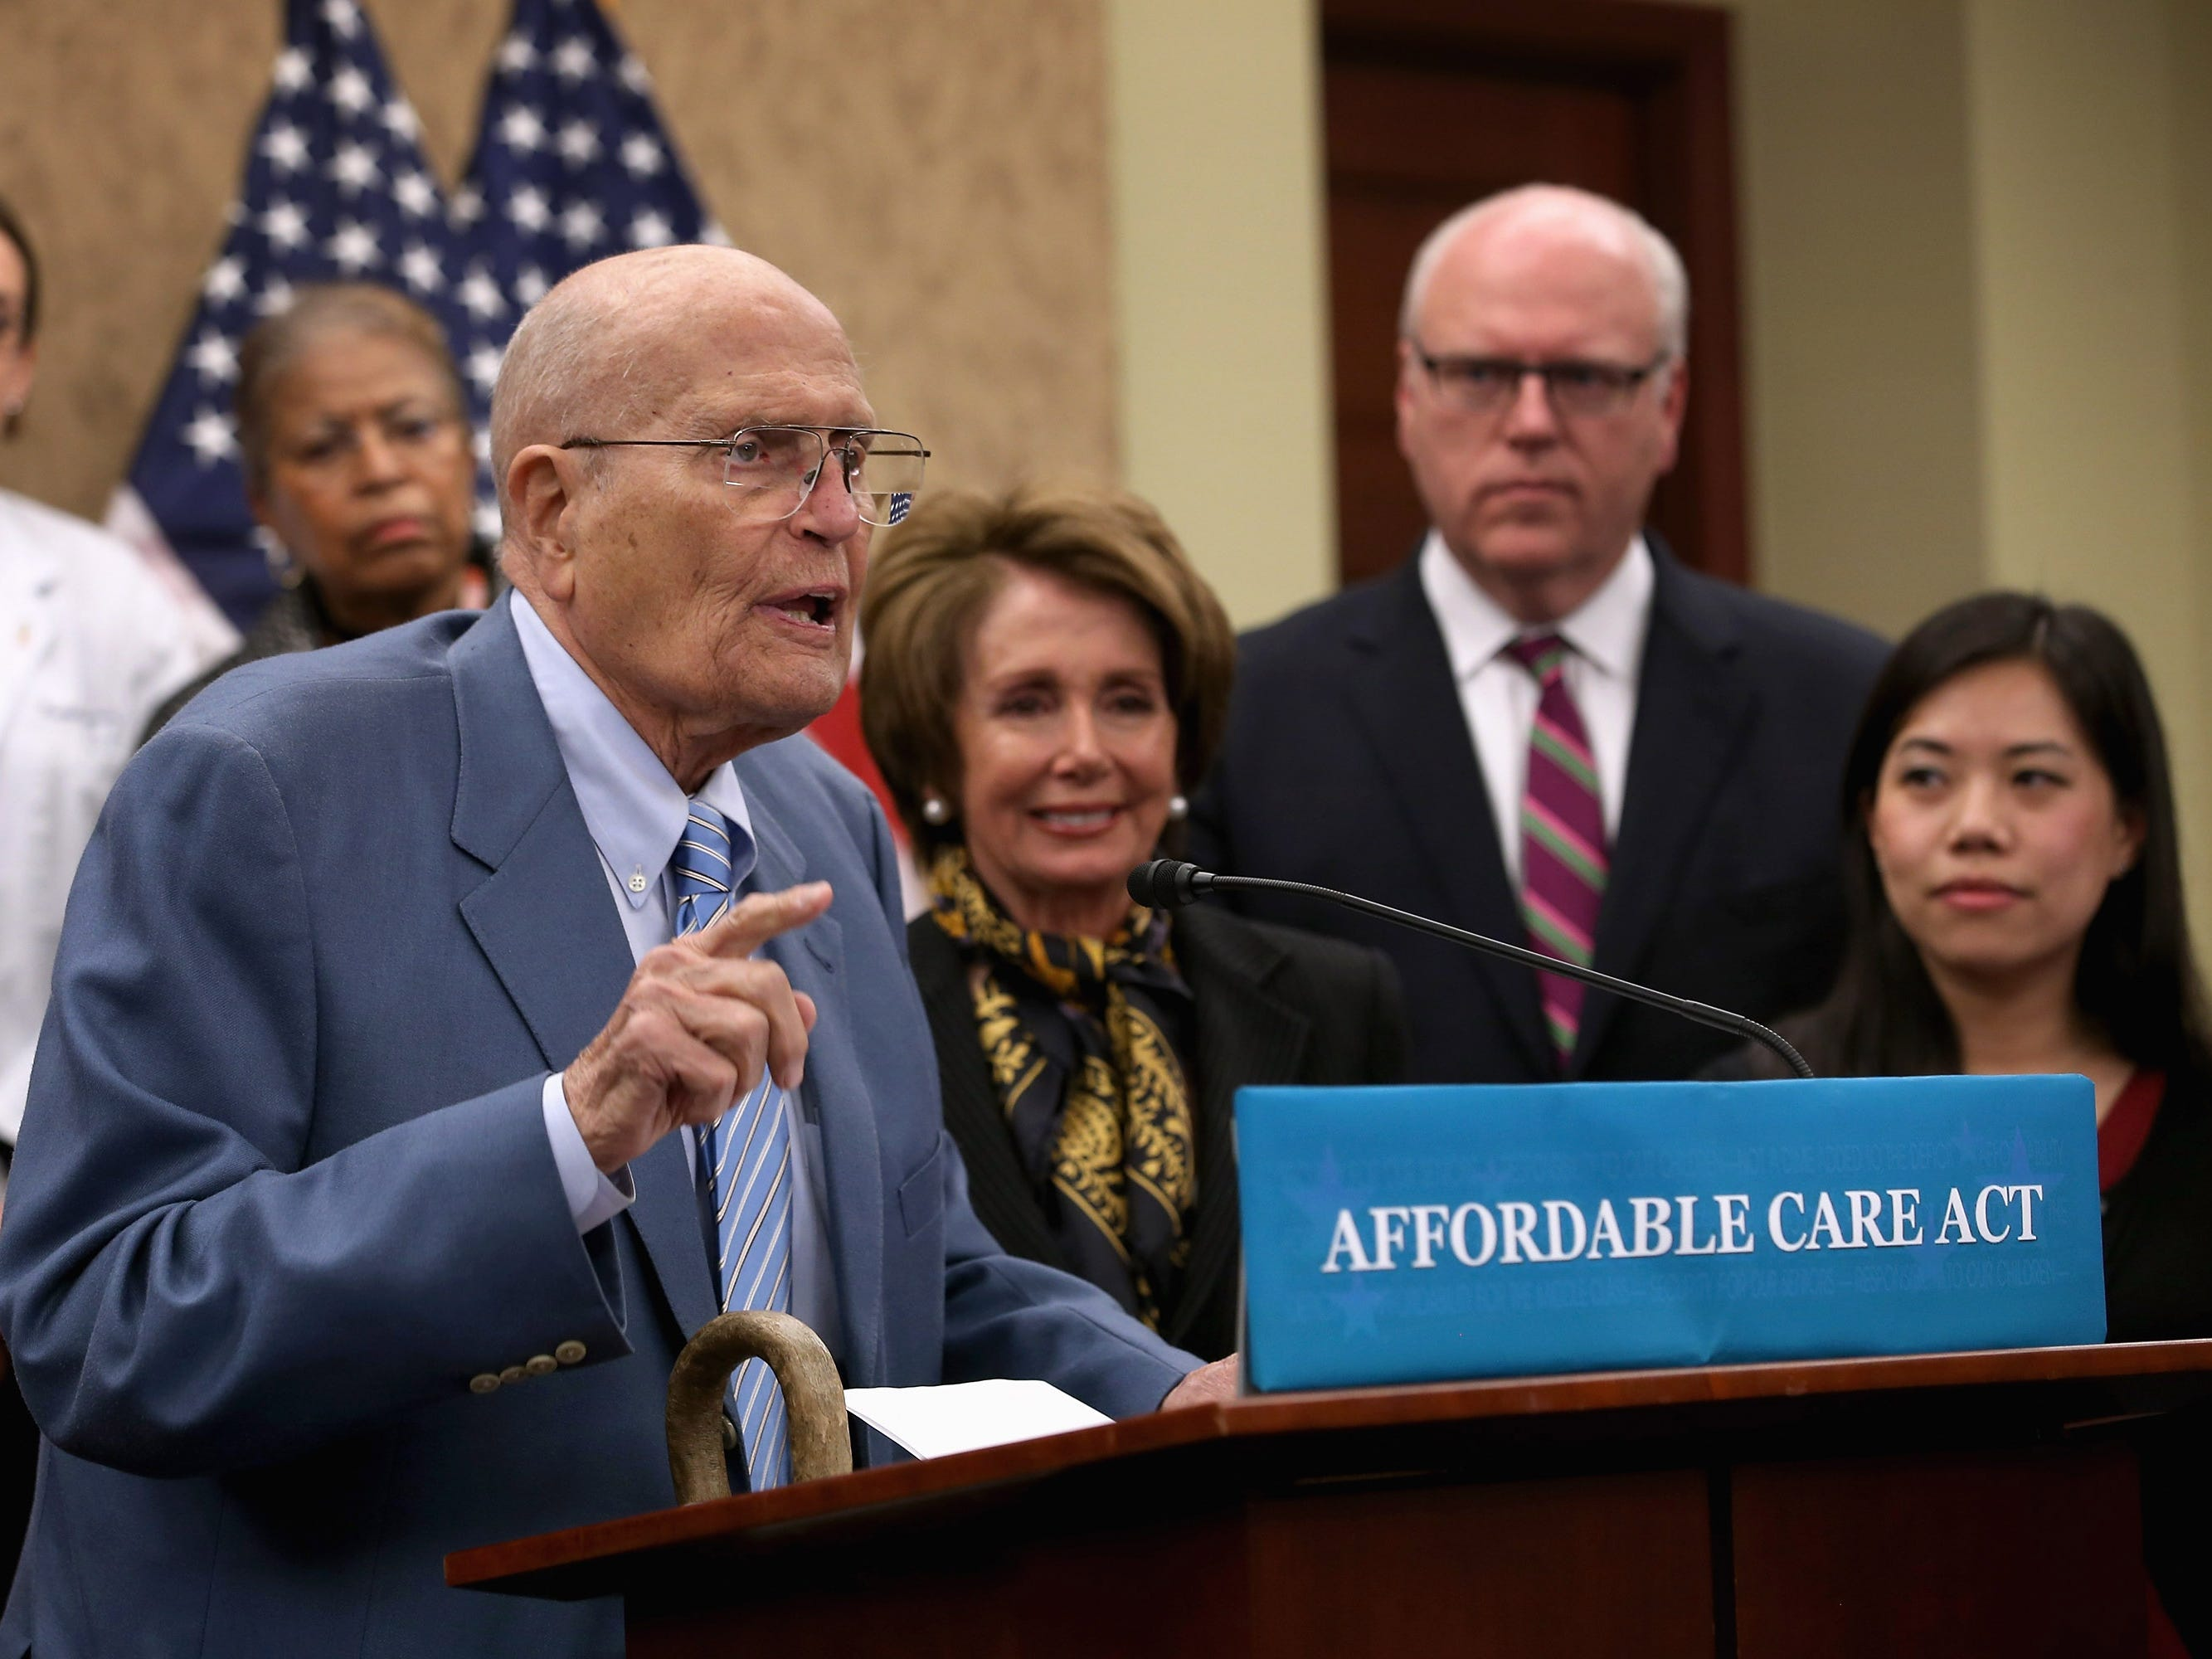 Dingell speaks during an event marking the third anniversary of the passage of the Affordable Care Act at the U.S. Capitol on March 20, 2013 in Washington, DC.  Early the following year, at age 87, he would announce his retirement.